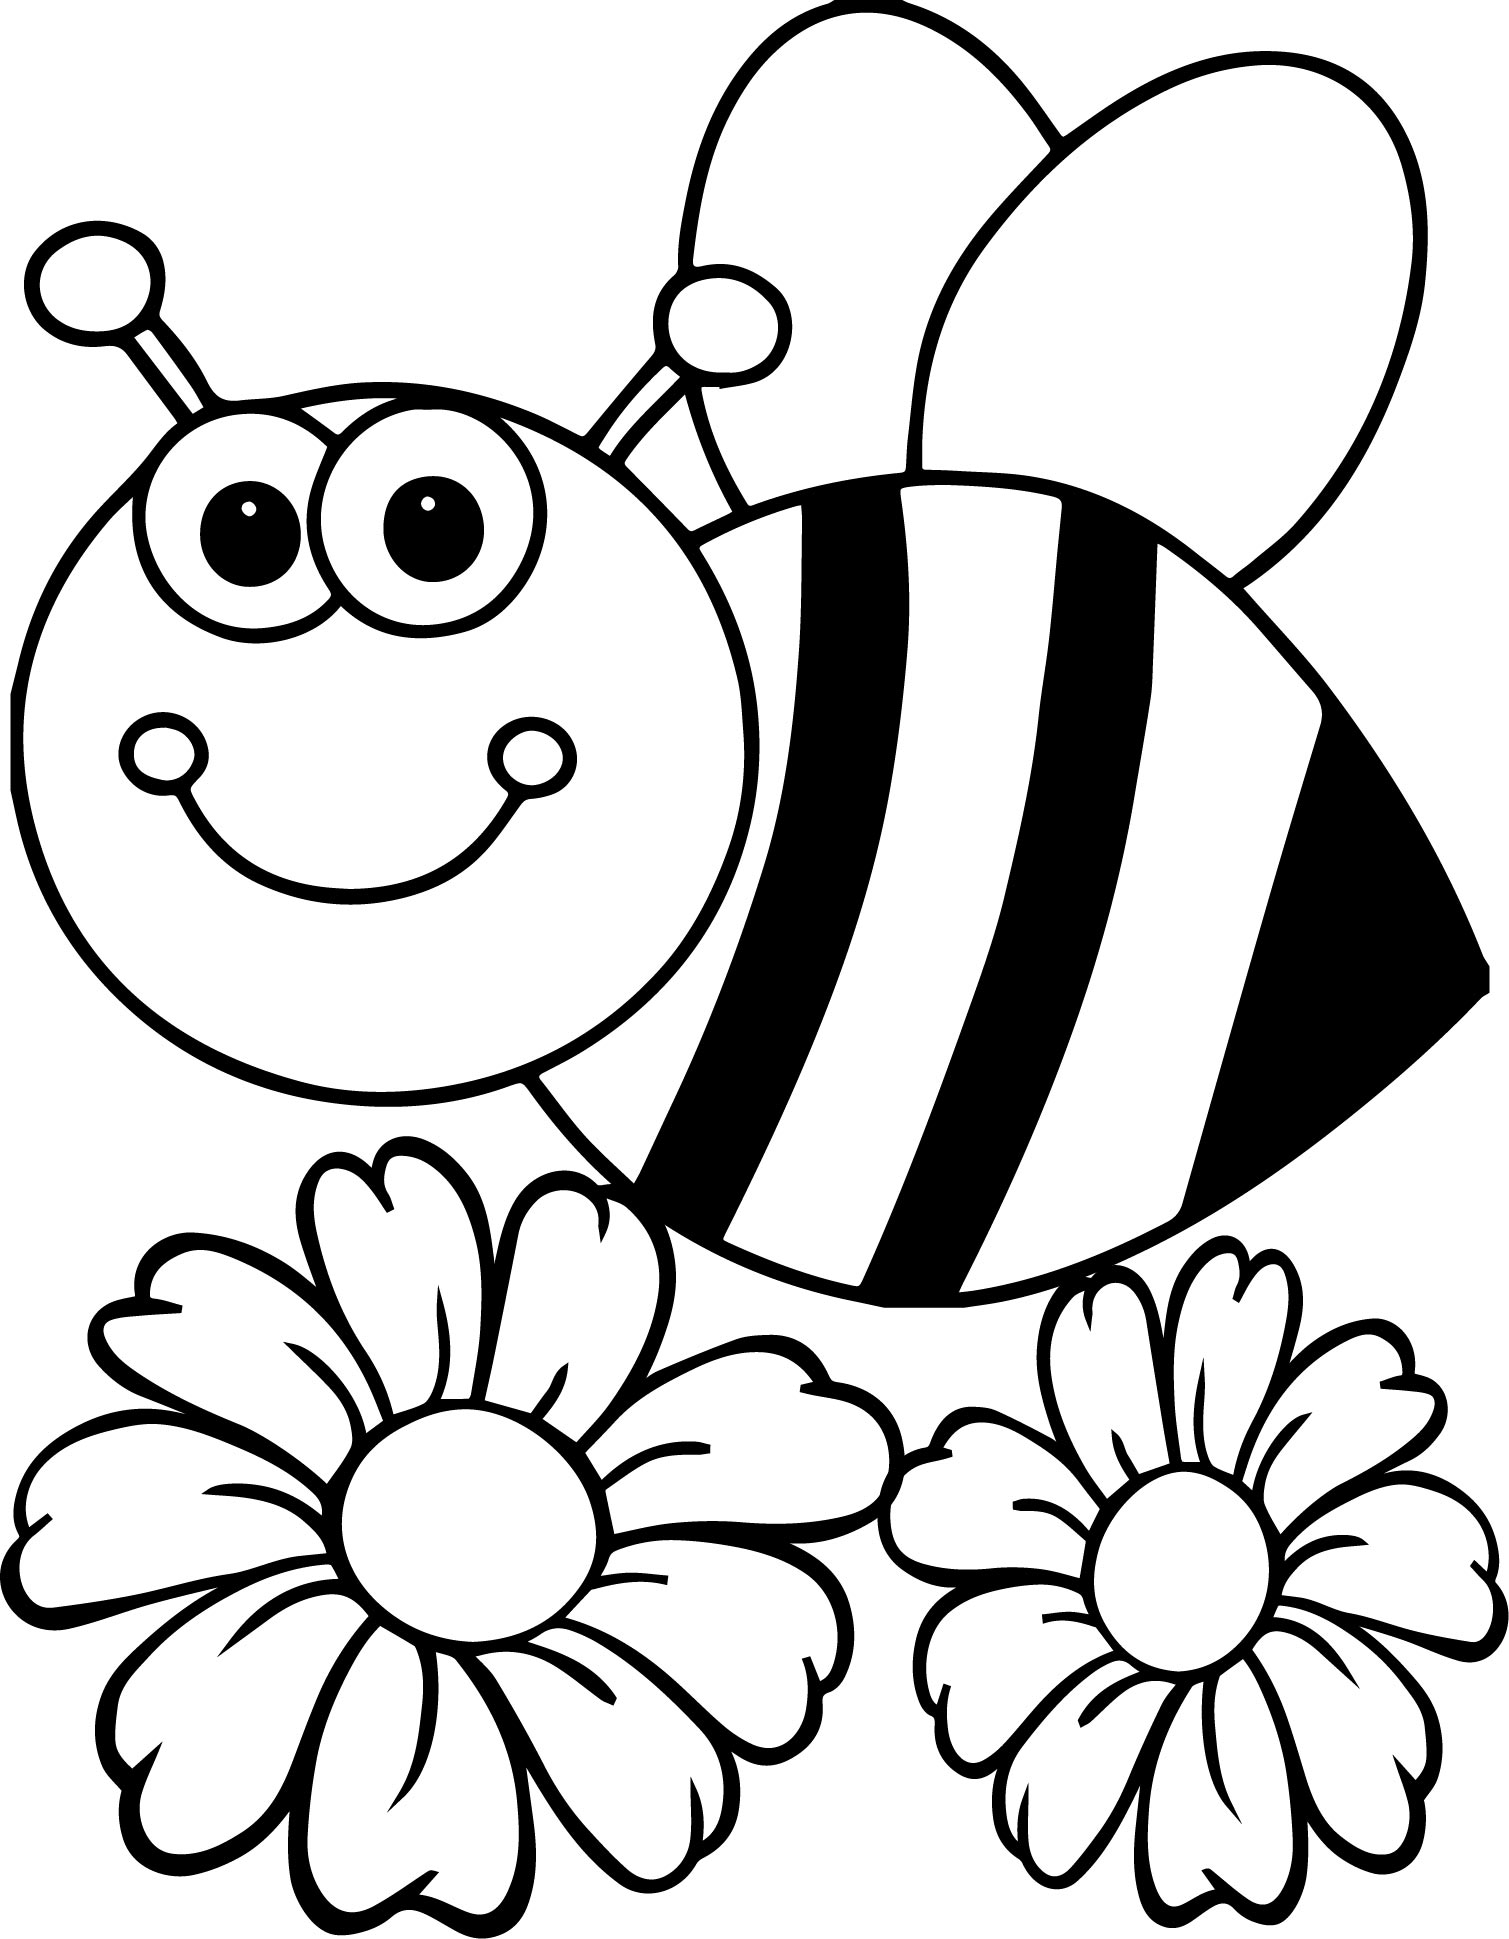 coloring pages of bumble bees - bee flower coloring page